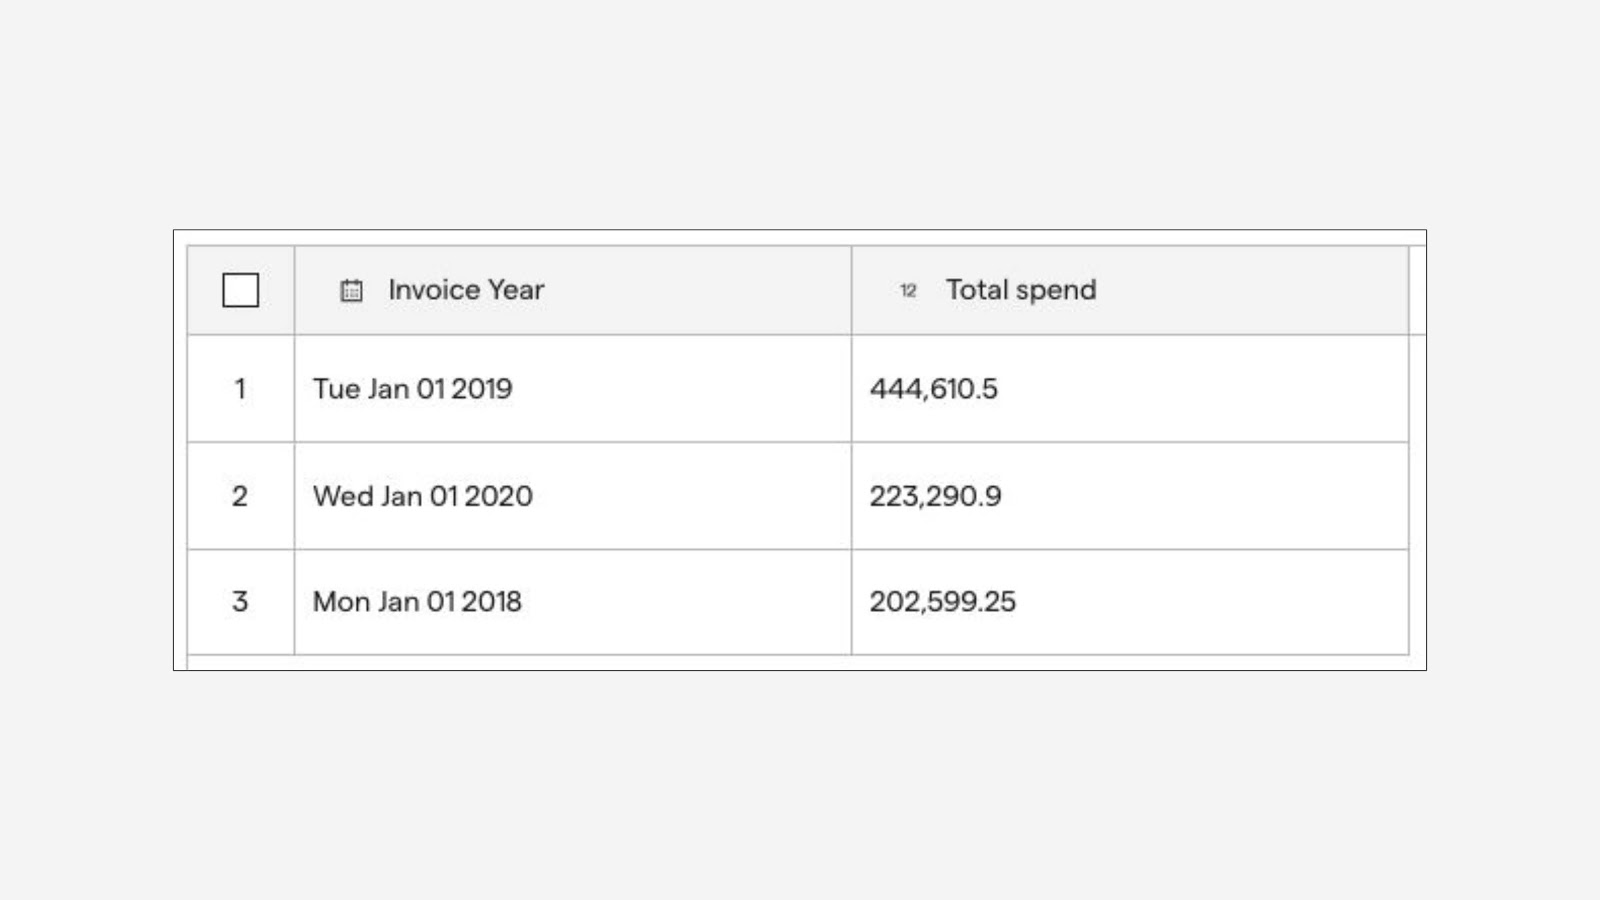 Query result showing total spend by year